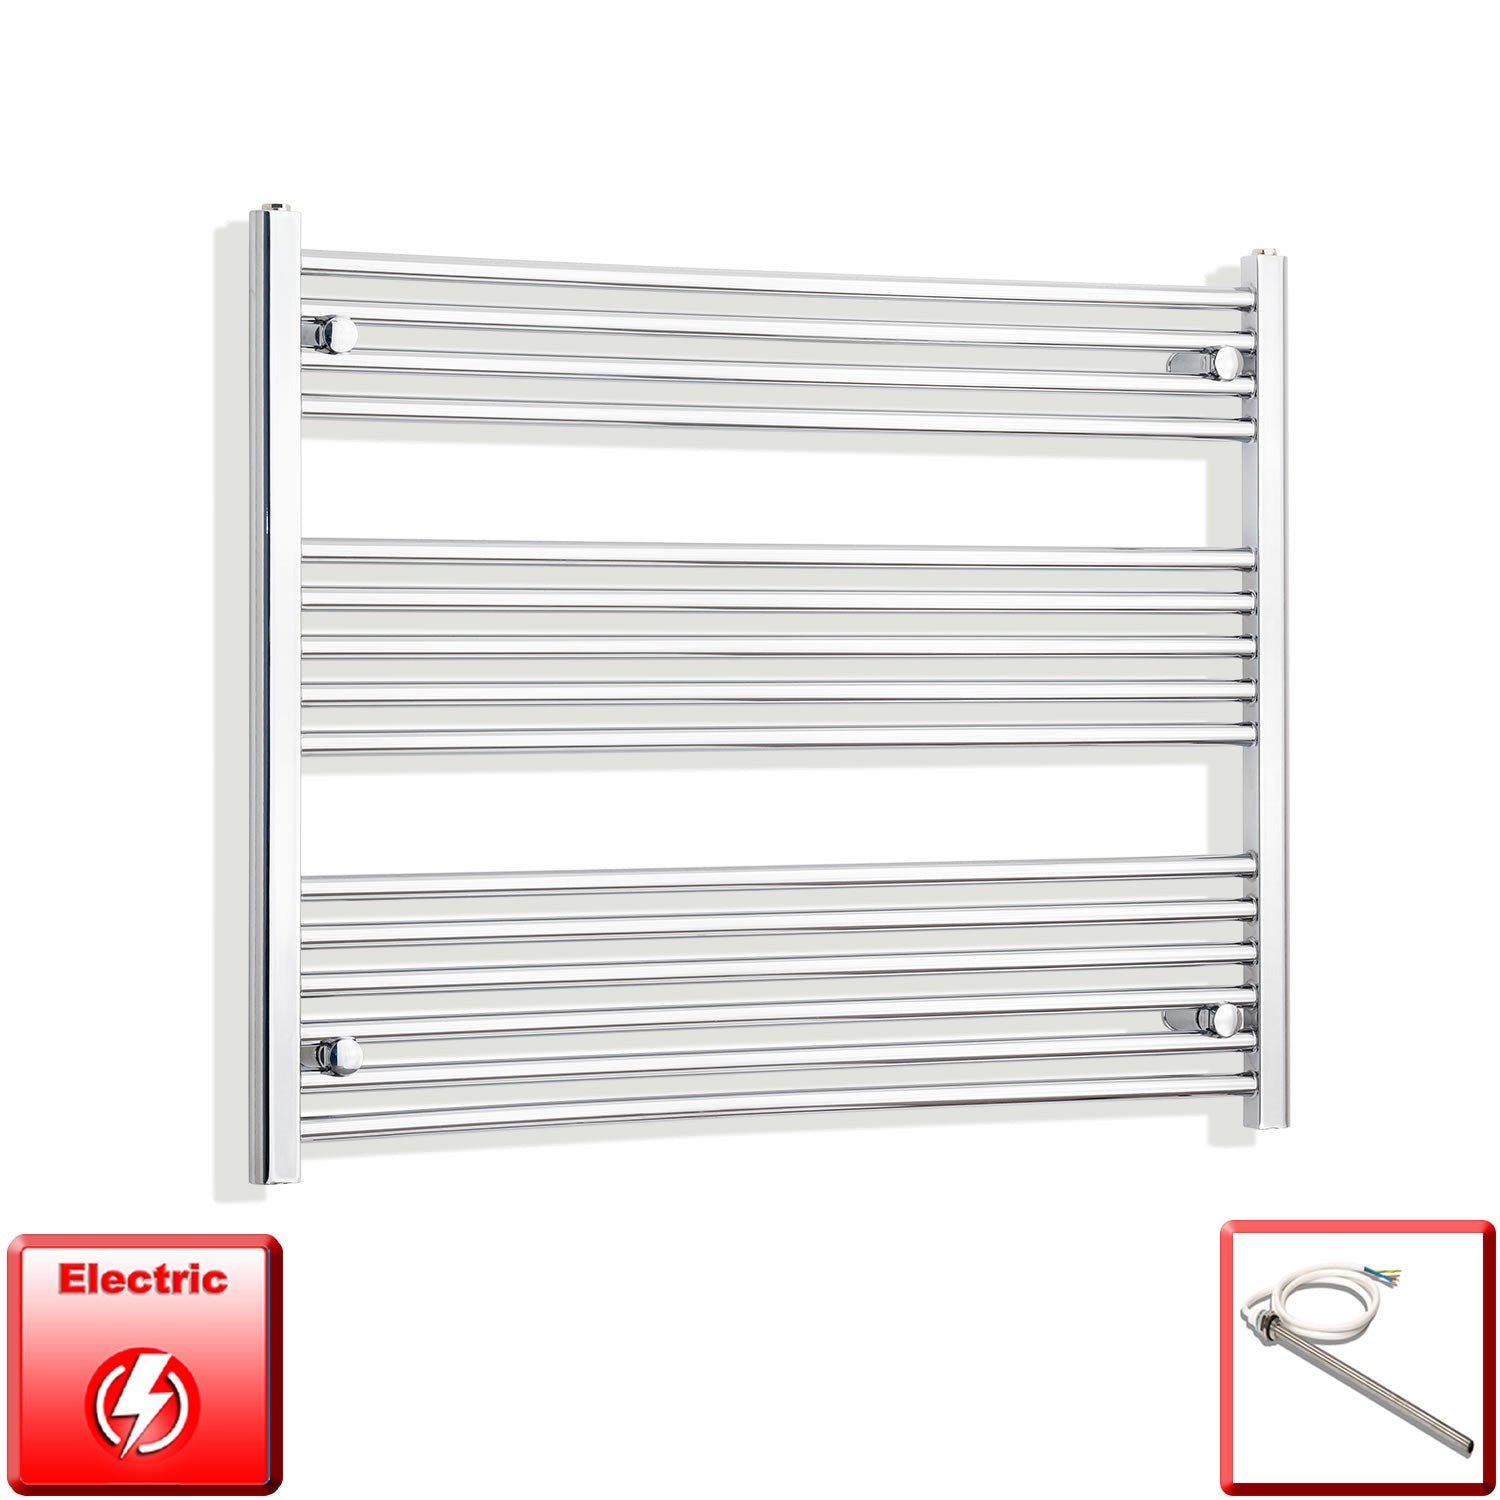 1000mm Wide 800mm High Pre-Filled Chrome Electric Towel Rail Radiator With Single Heat Element